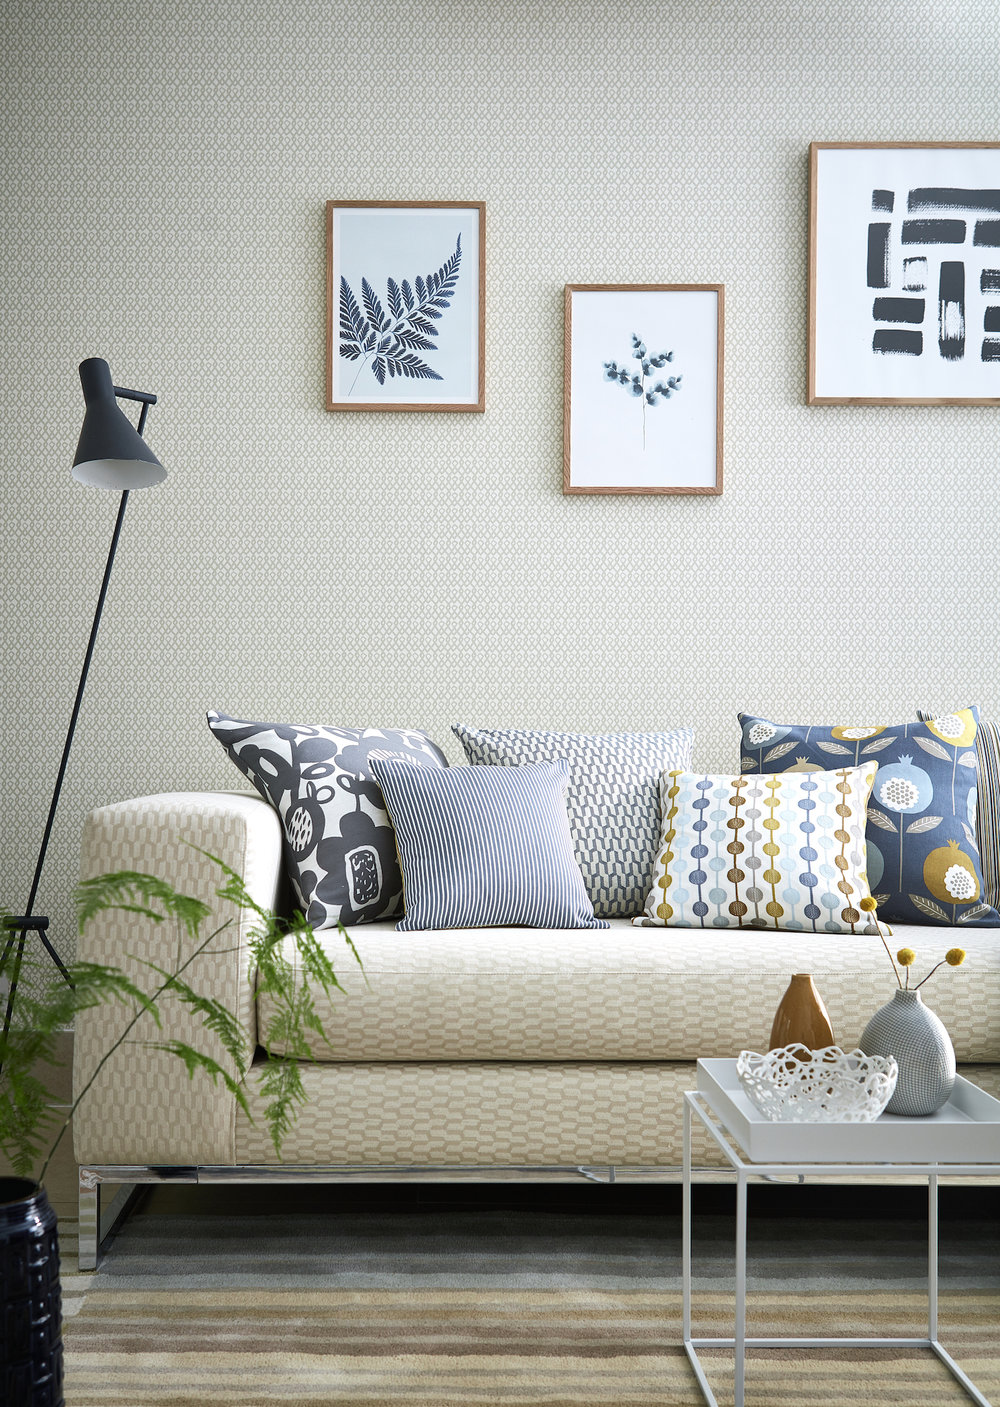 Wallpaper: Ristikko - £39 / roll; Sofa: Metsa - £39 / metre; Cushions: A selection of fabric from Pepino